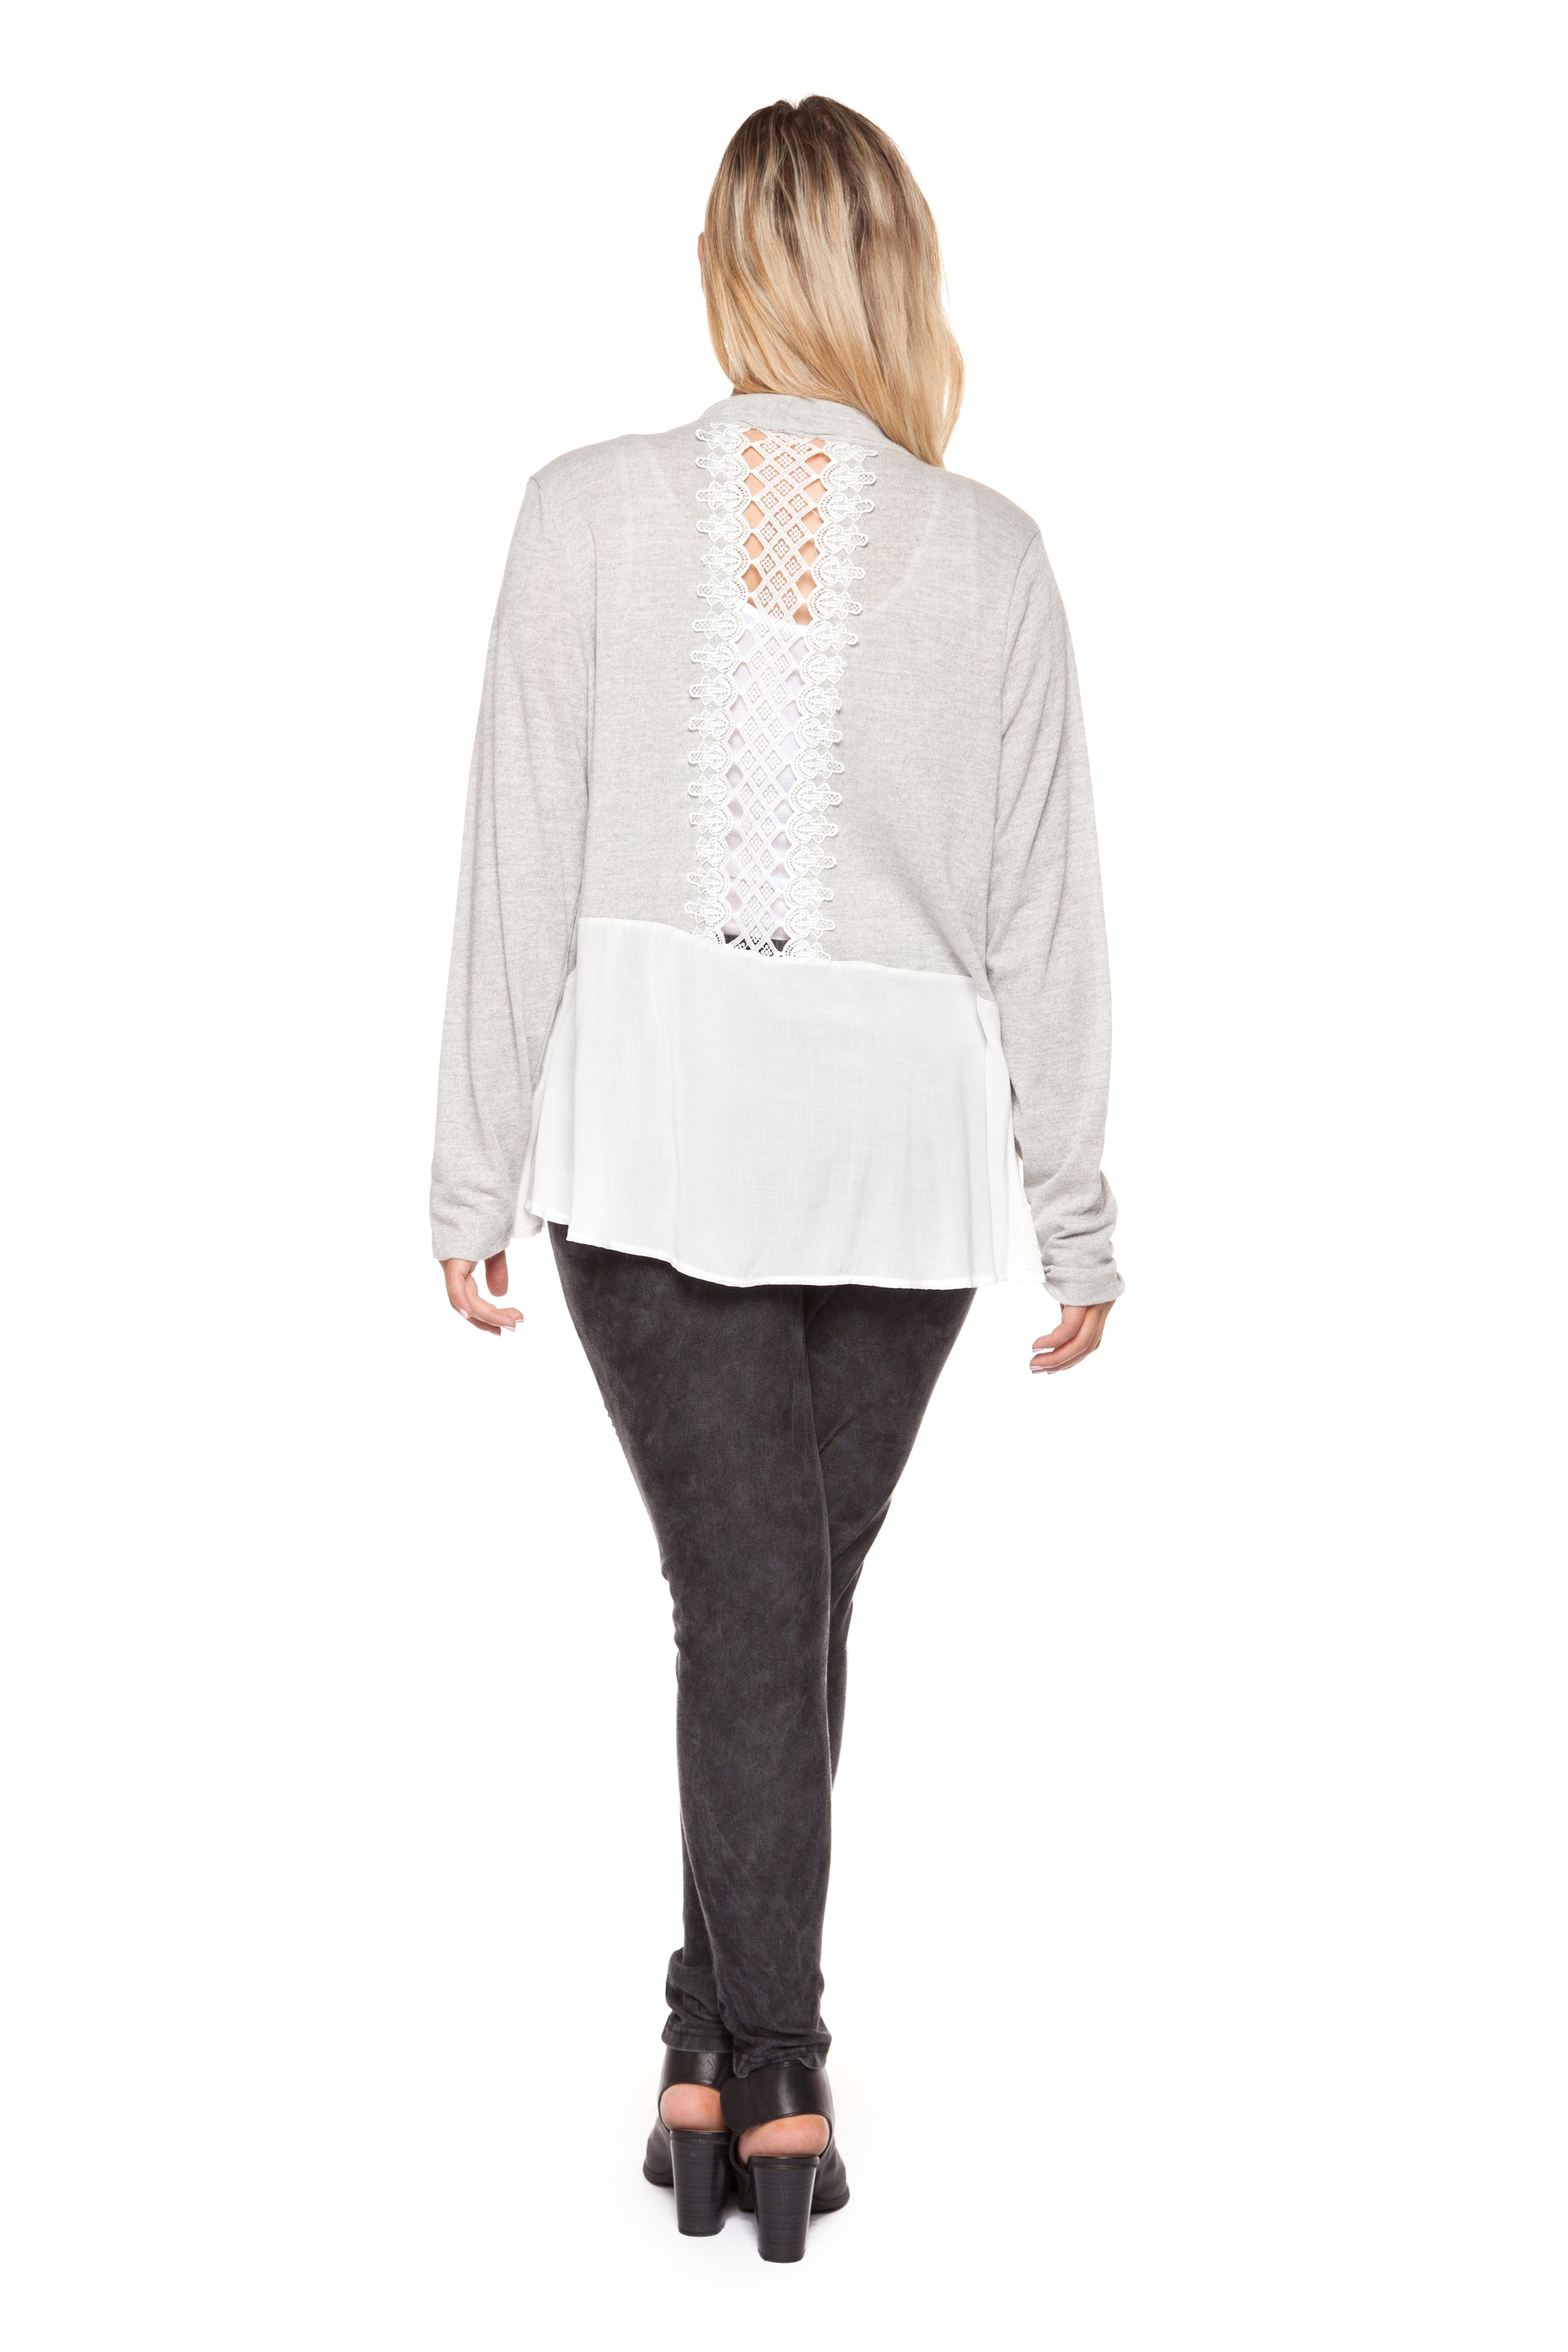 Plus Size Long Sleeve Grey and Ivory Cardigan